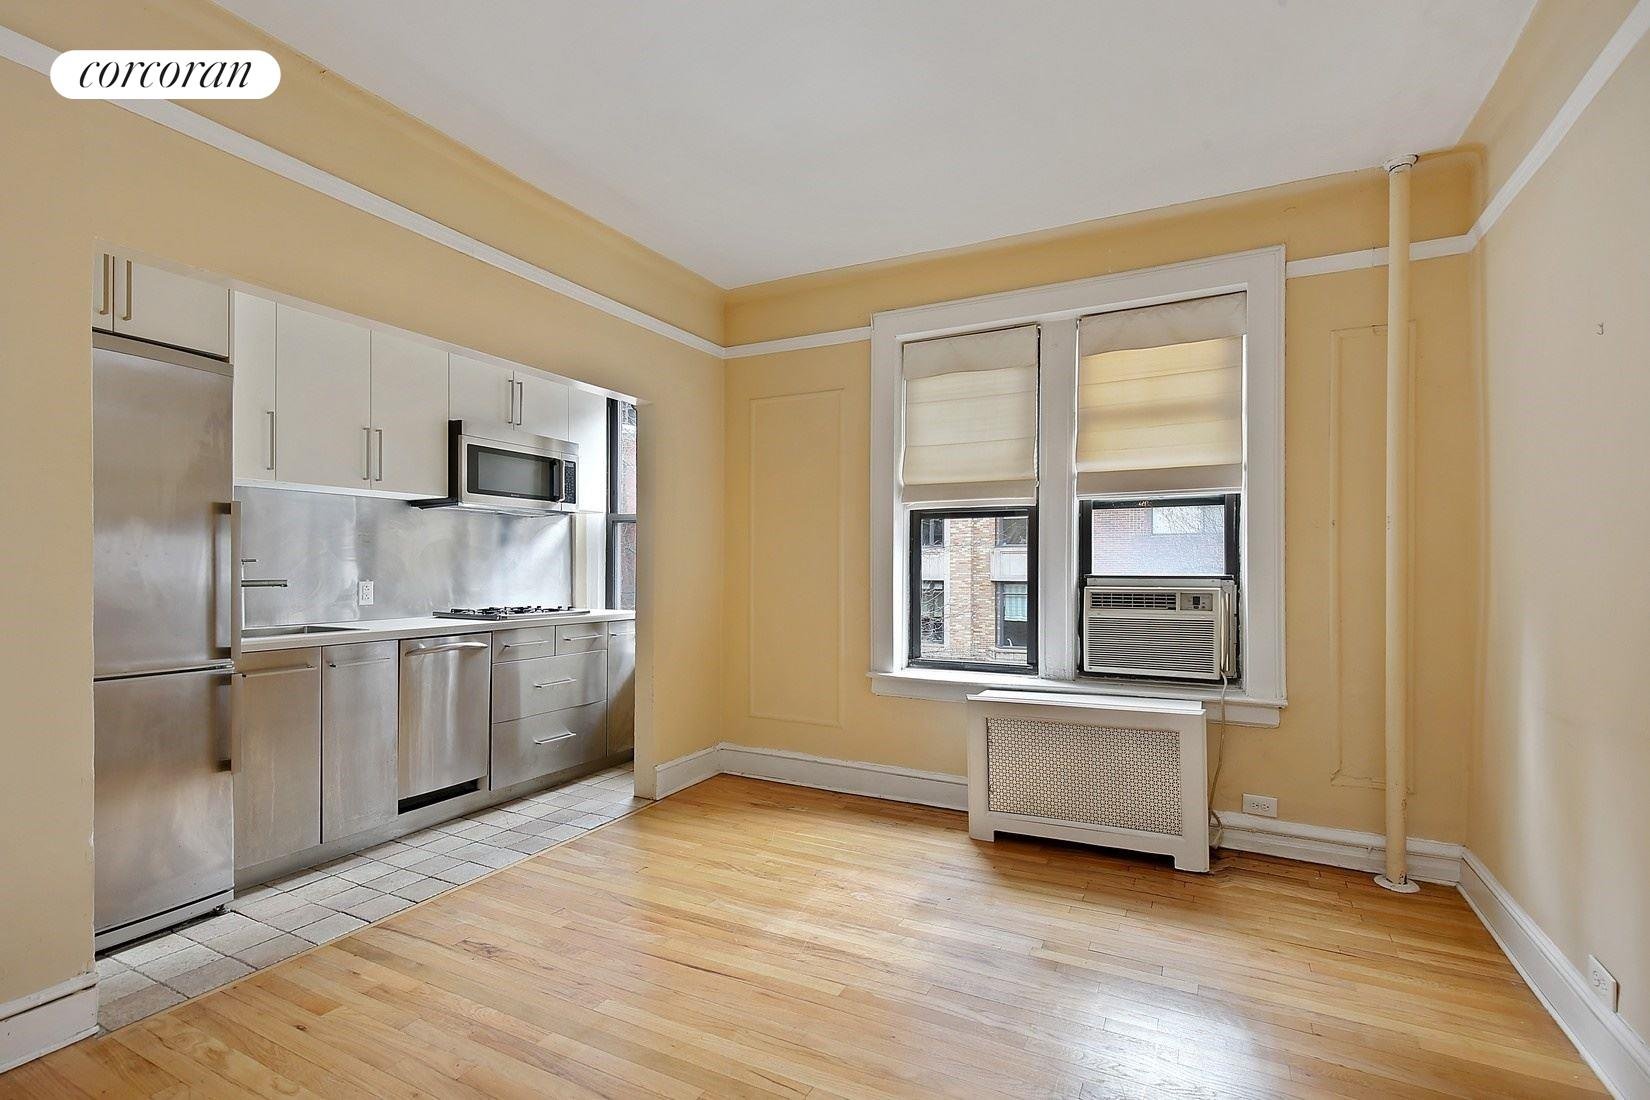 181 East 93rd Street, 2C, No image available